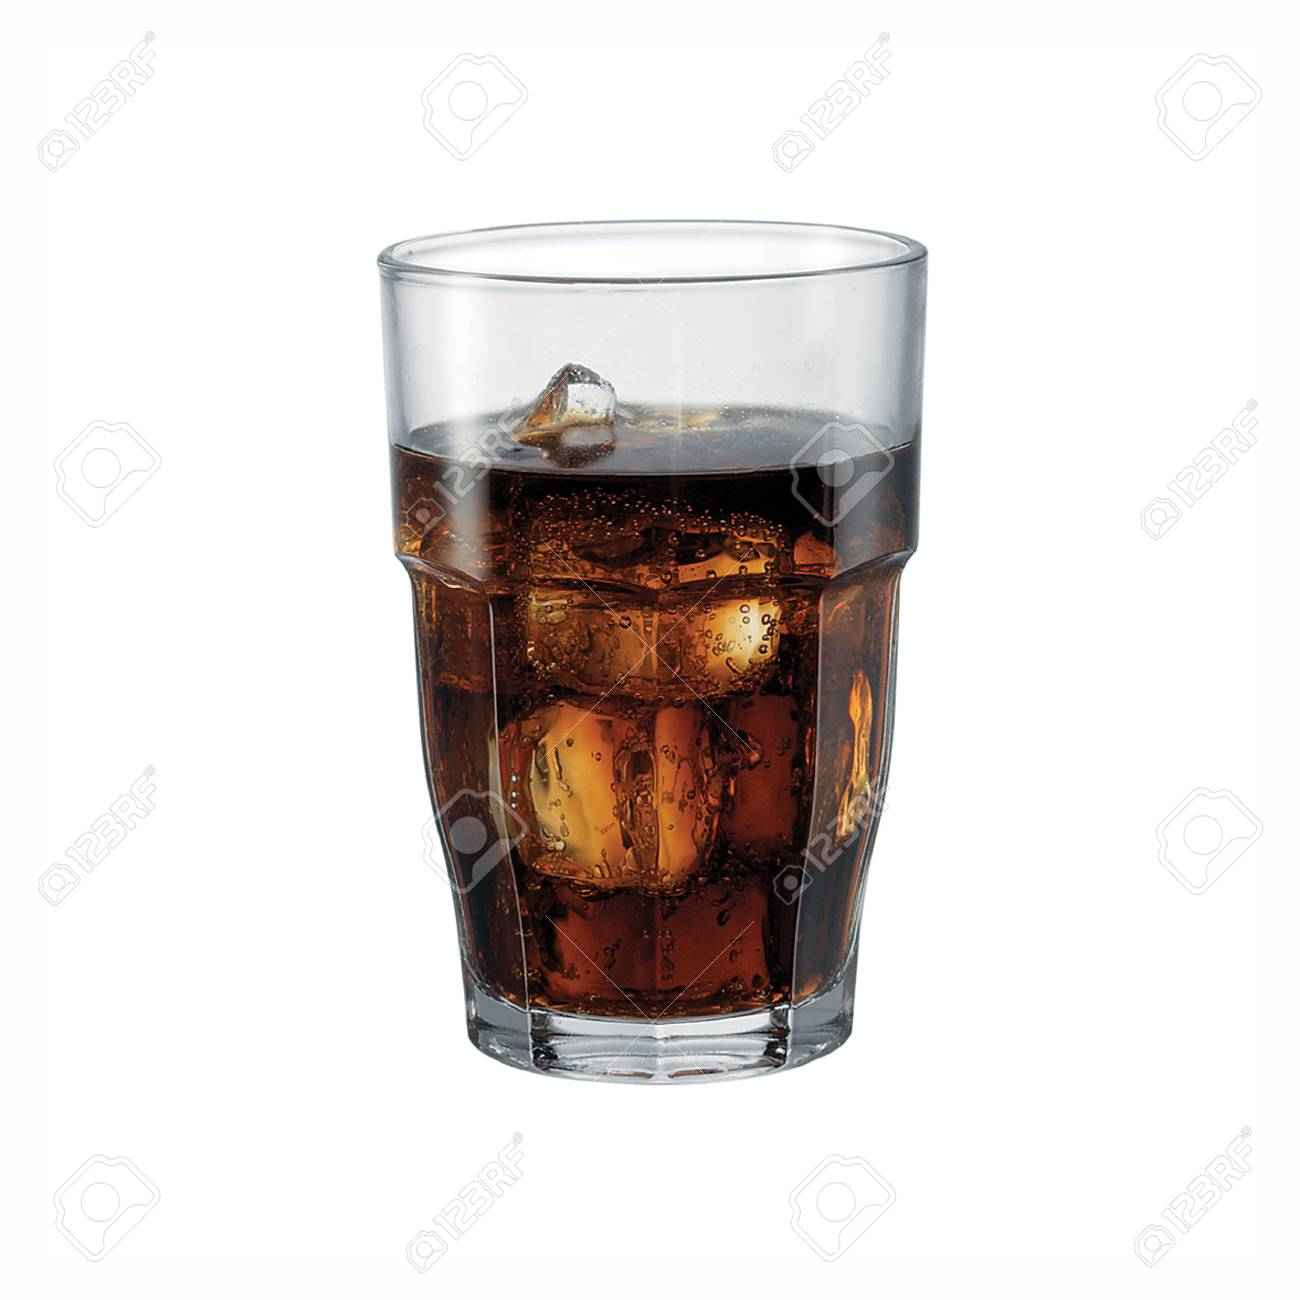 Dark Soda With Ice In Glass Isolated On White Background. Stock Photo,  Picture And Royalty Free Image. Image 117263921.